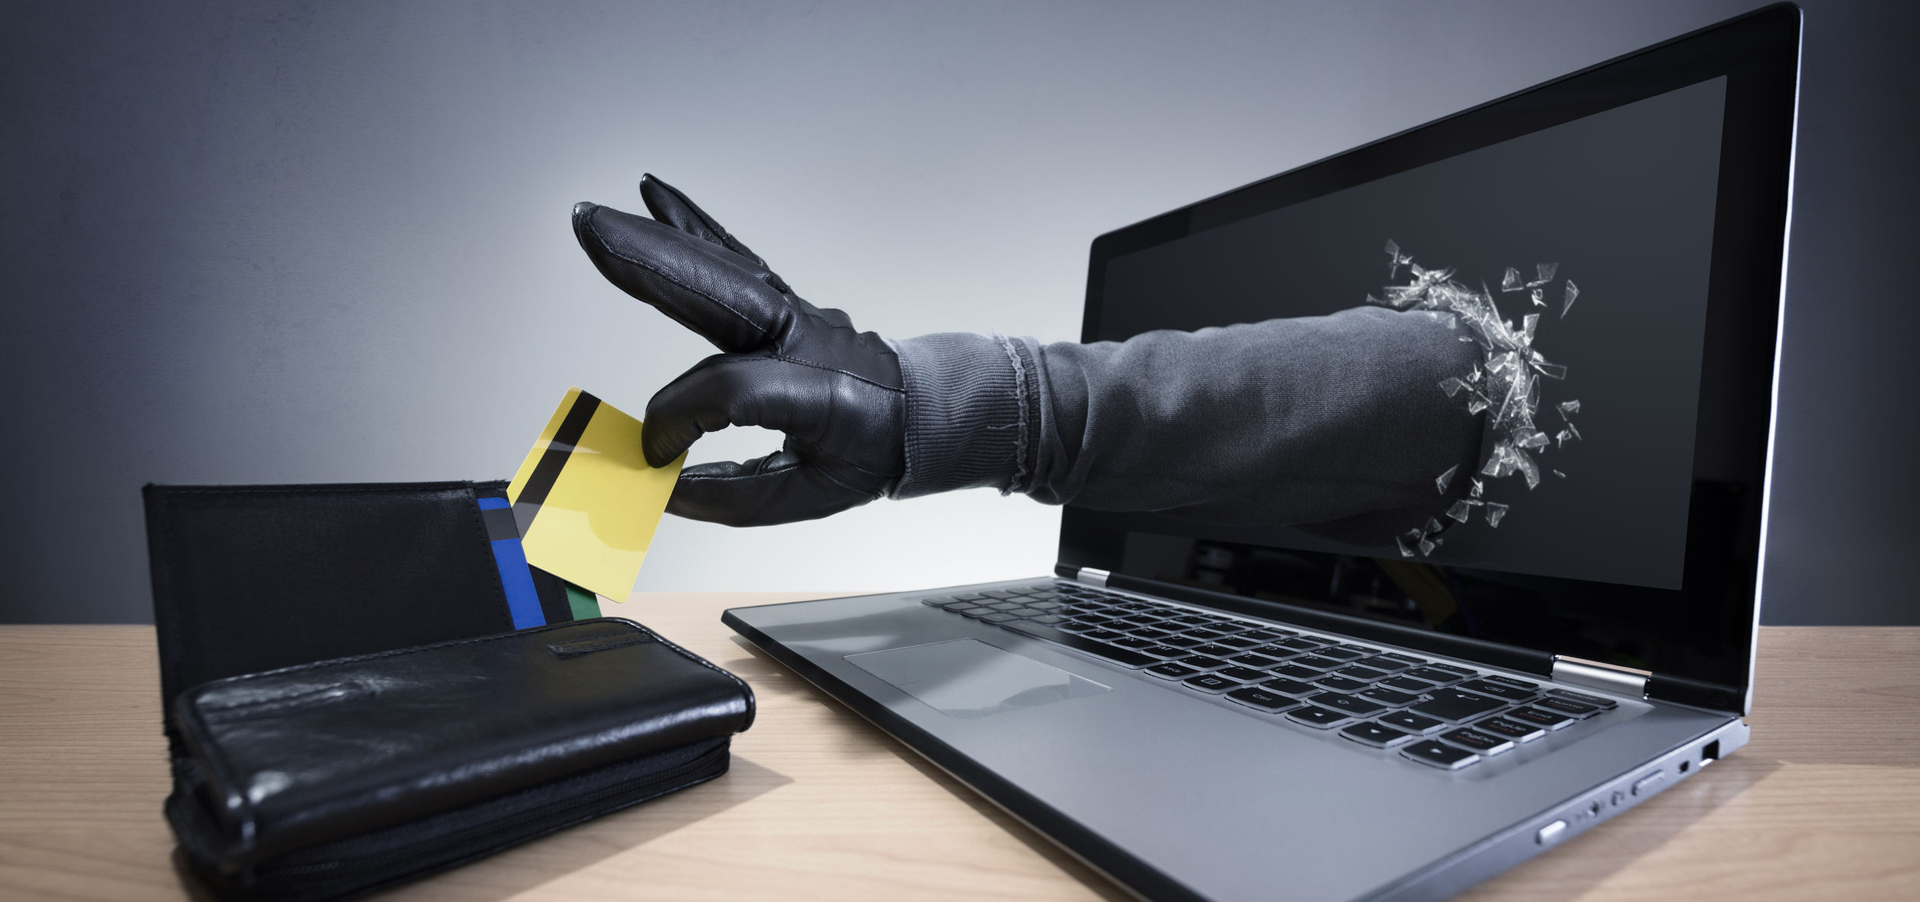 How Is Your Personal Data Protected Online - The Law